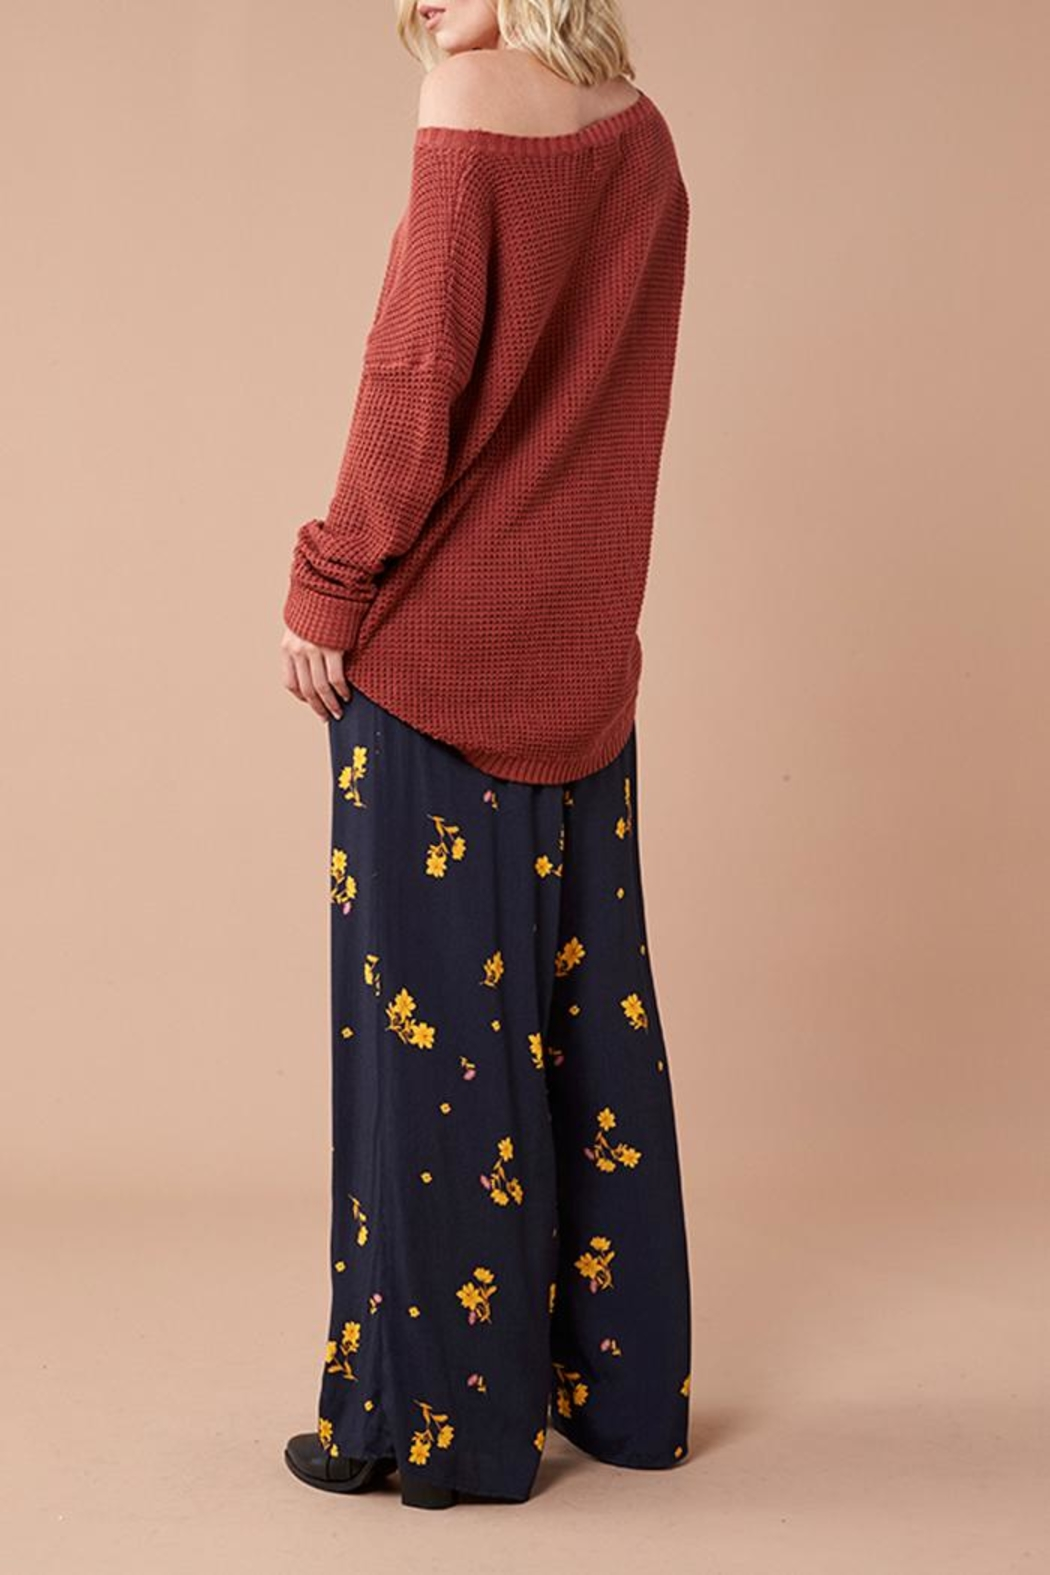 MinkPink Black Floral Pants - Back Cropped Image